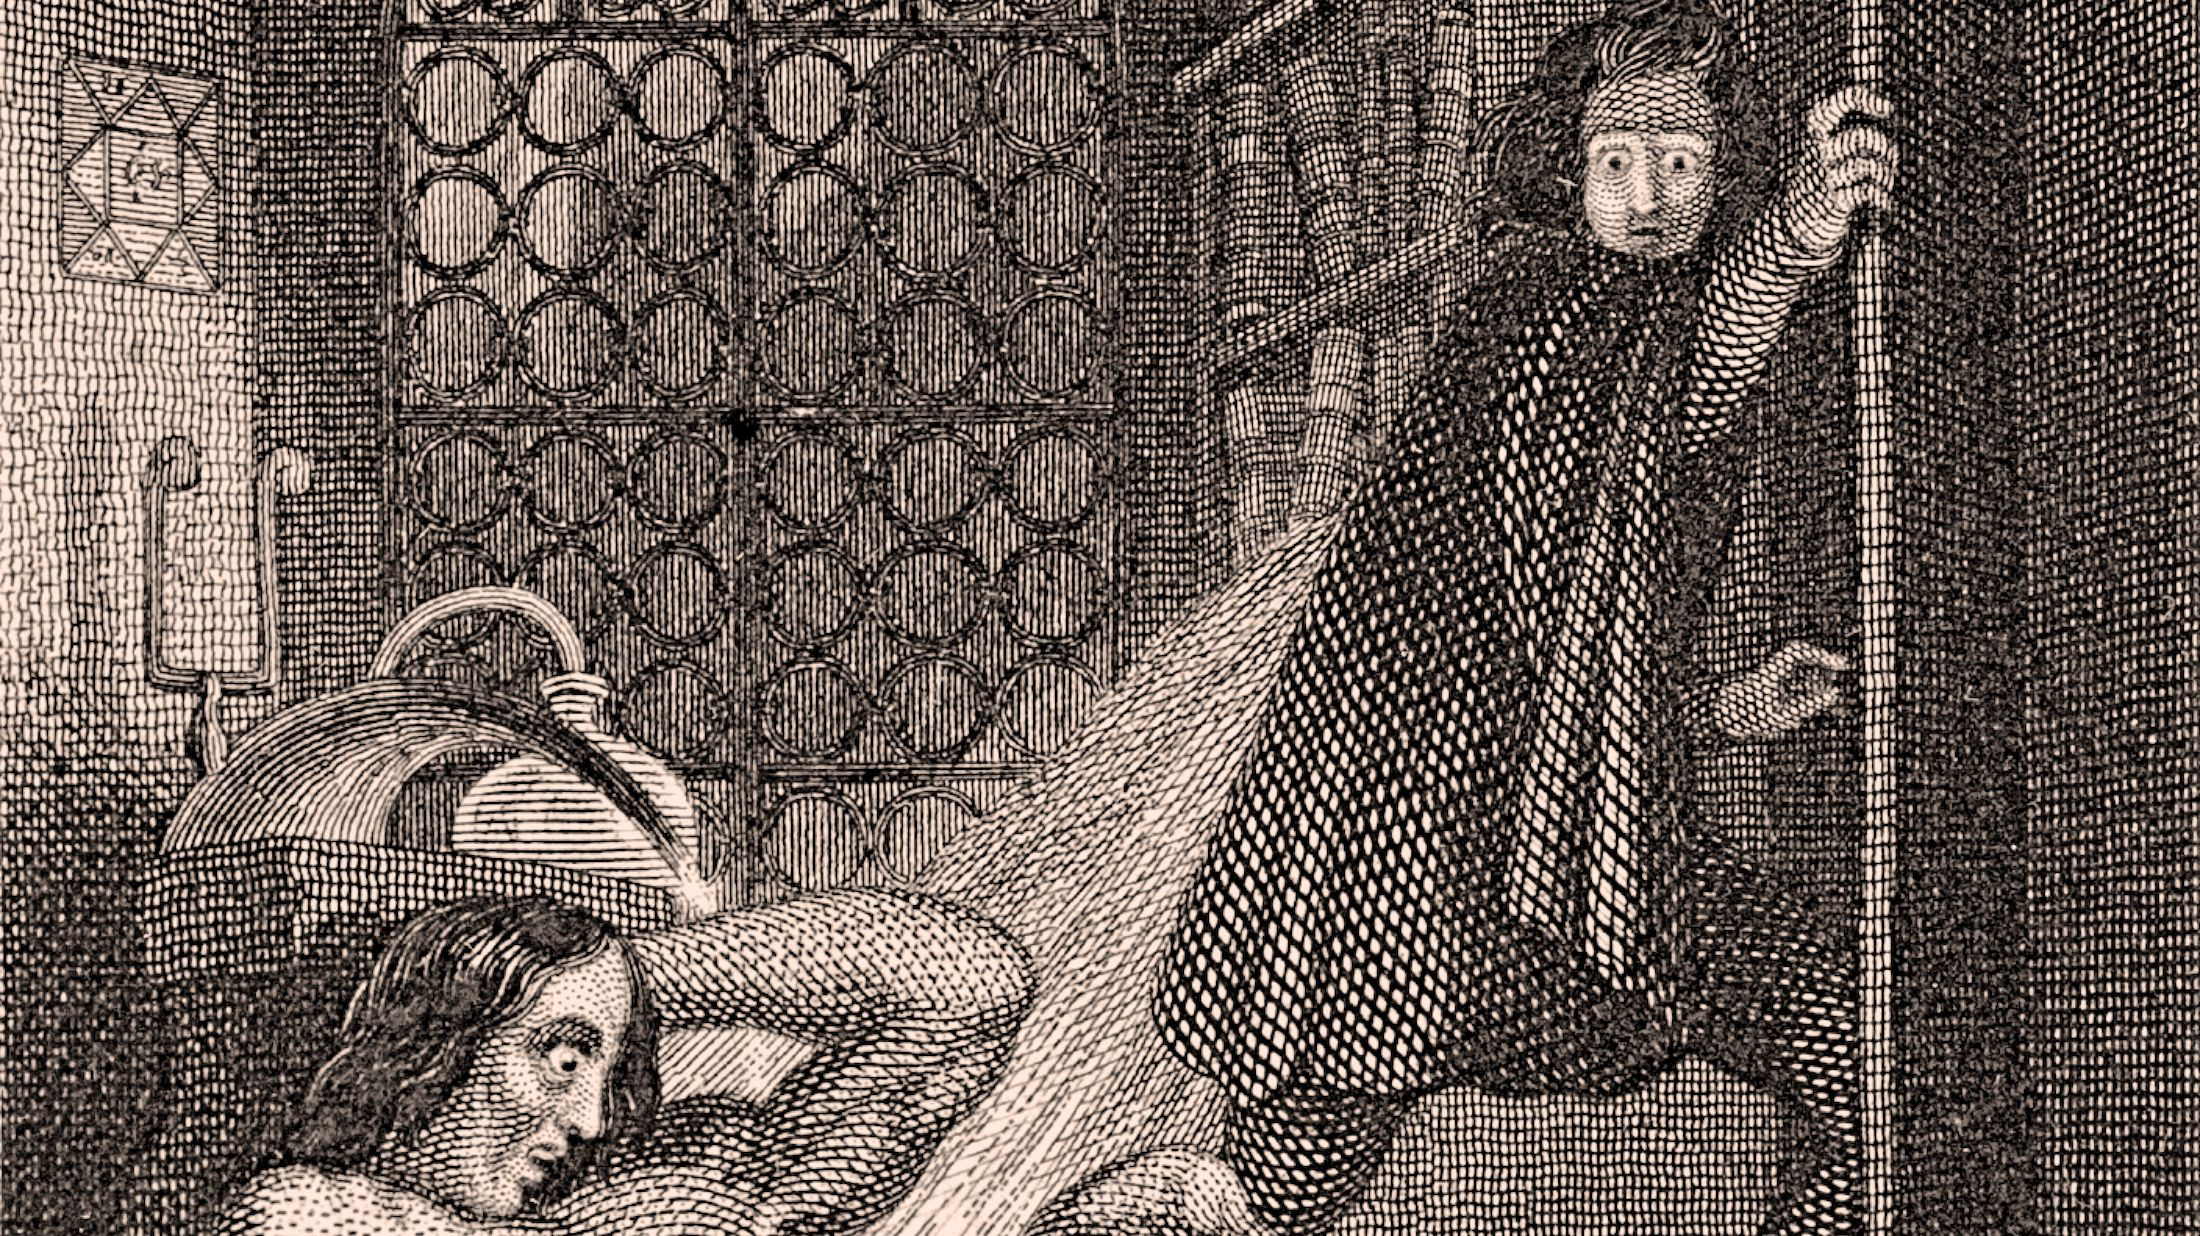 10 Surprising Facts About Mary Shelley's 'Frankenstein'